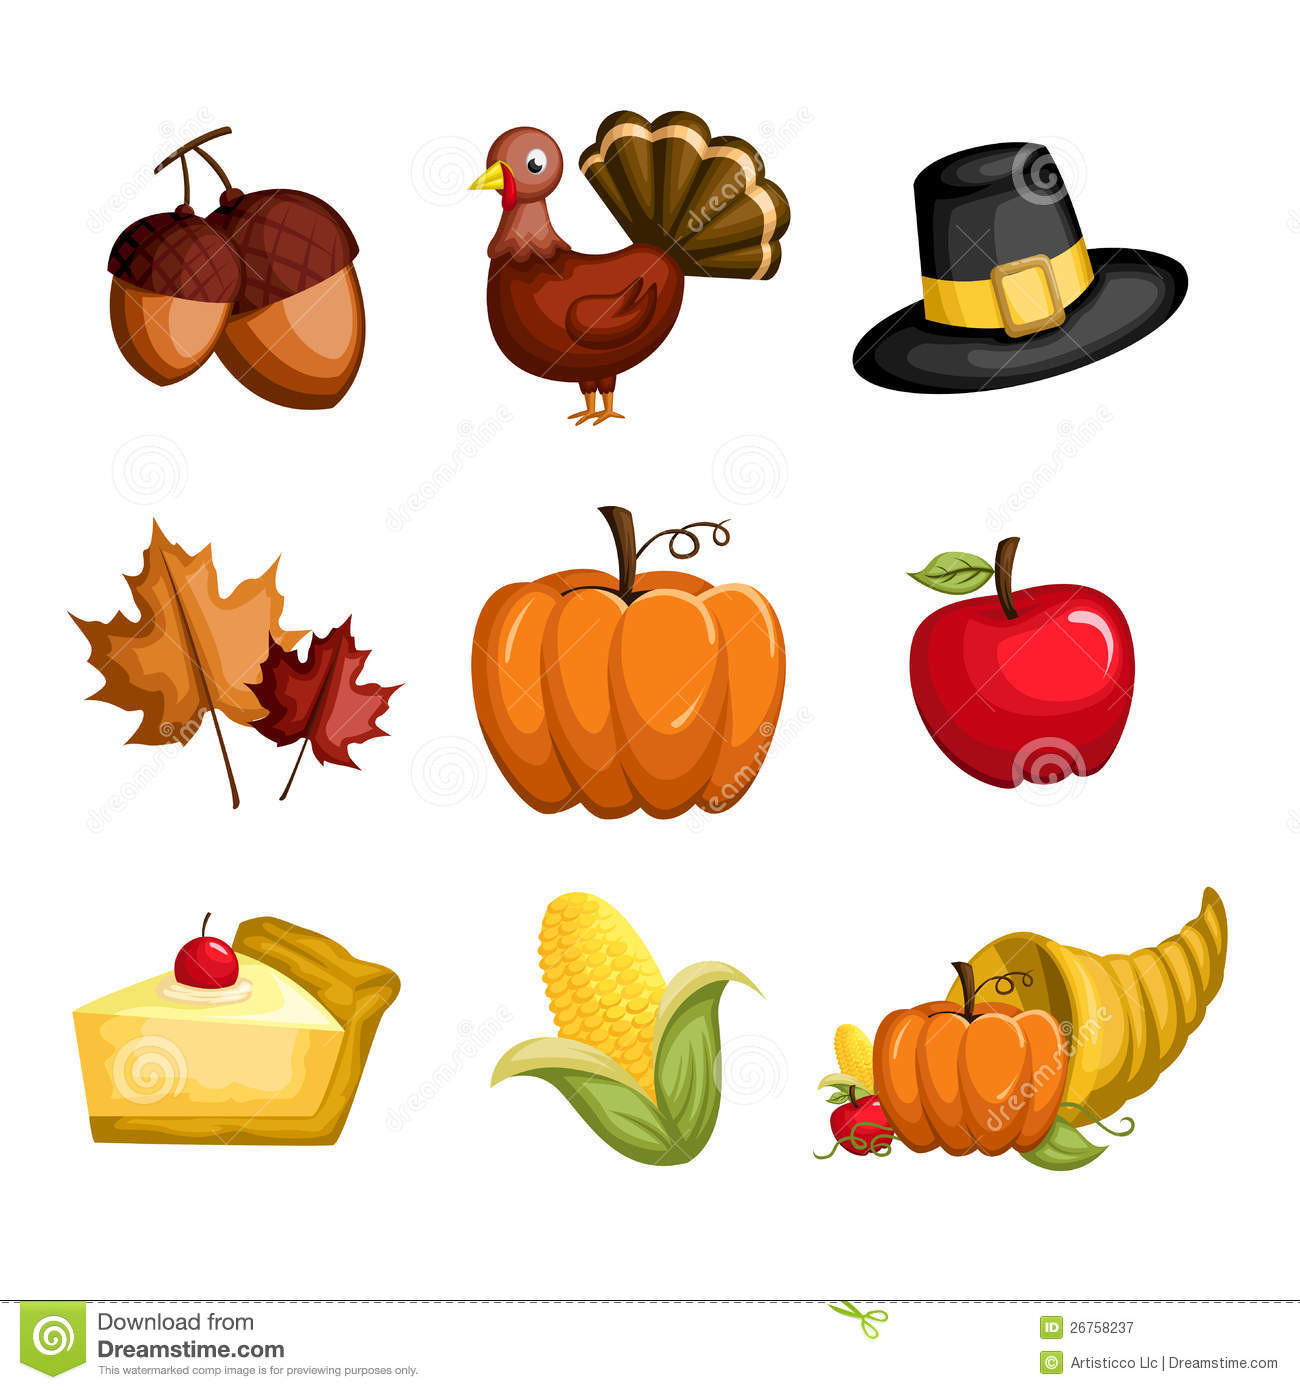 Turkey Icon For Thanksgiving  Thanksgiving Icons Royalty Free Stock graphy Image